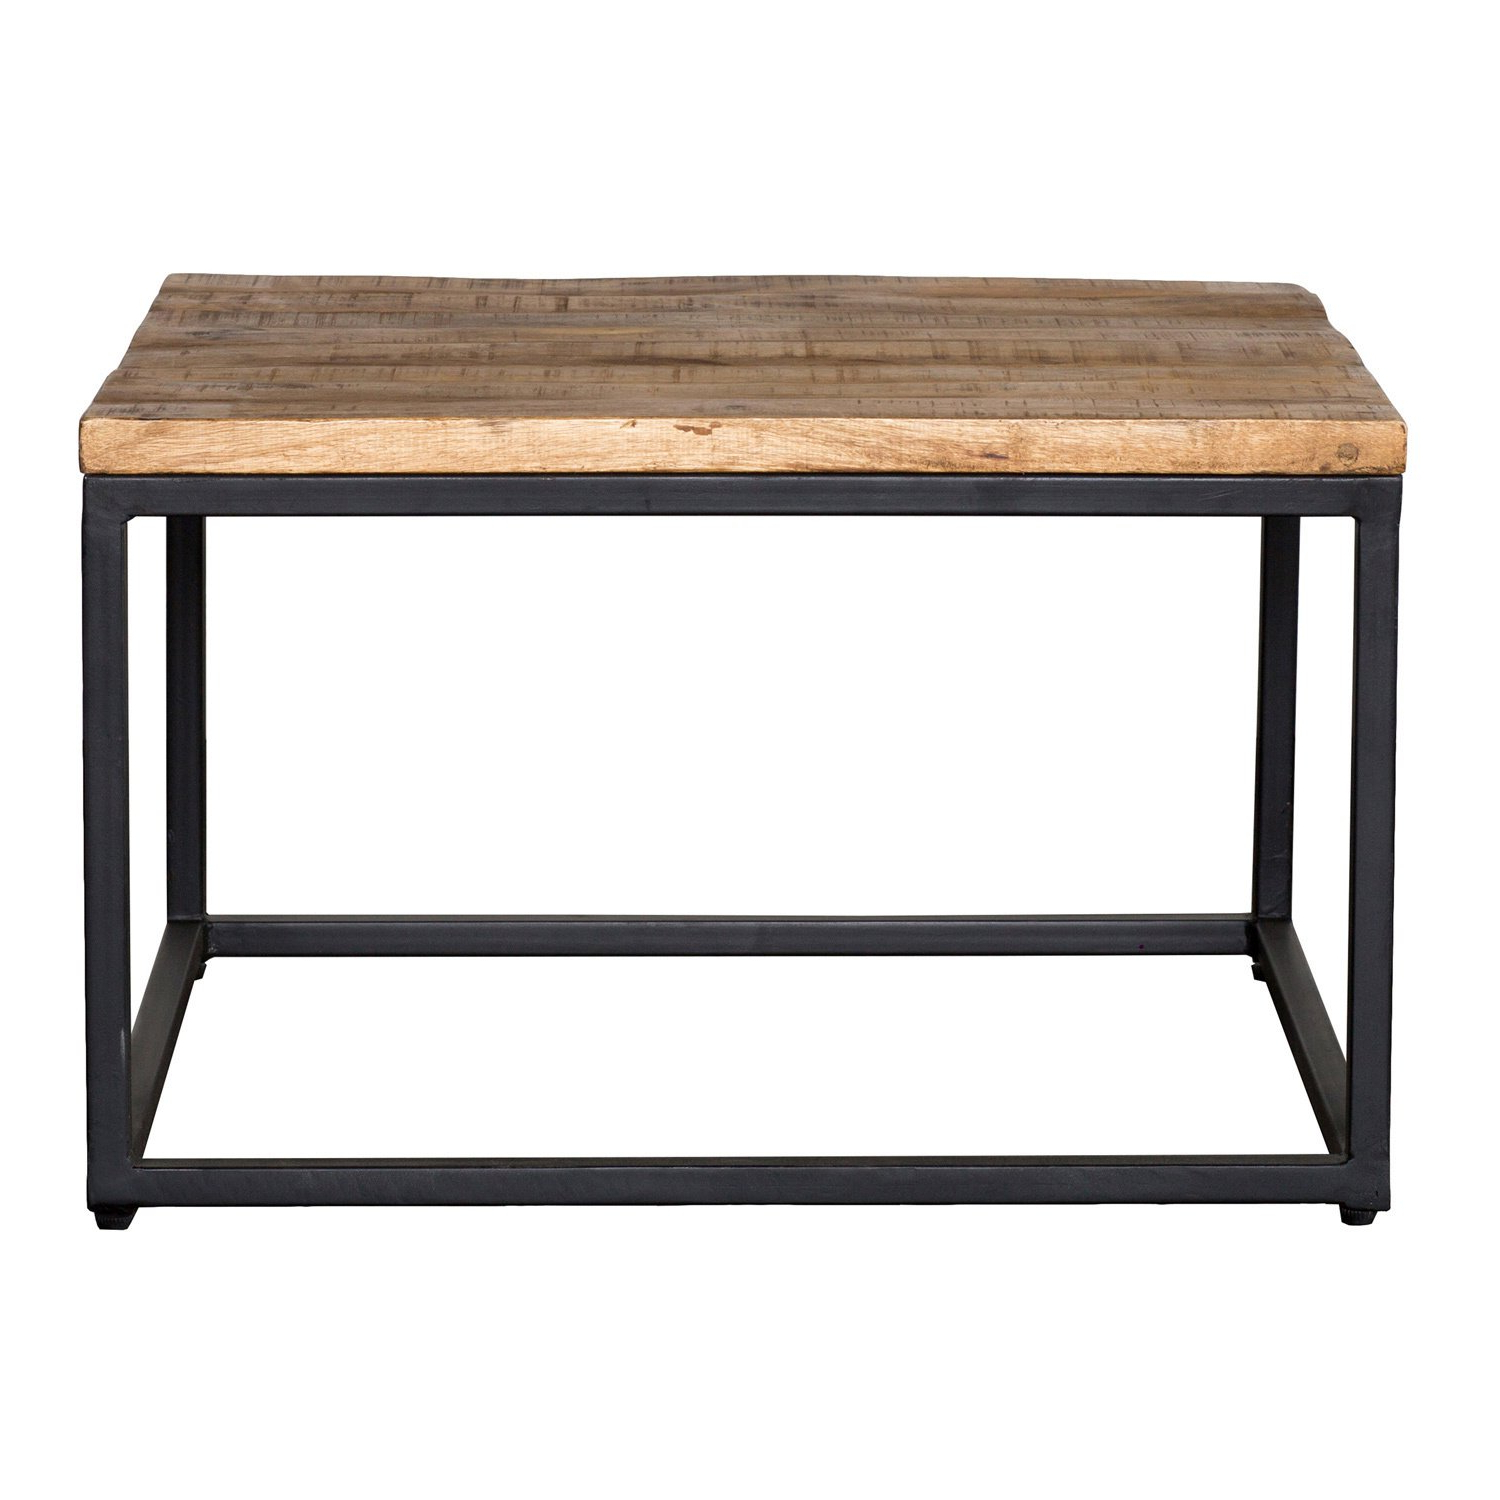 Most Up To Date Shop Paris Natural Wood And Iron 30 Inch Square Coffee Table Within Iron Wood Coffee Tables With Wheels (View 17 of 20)